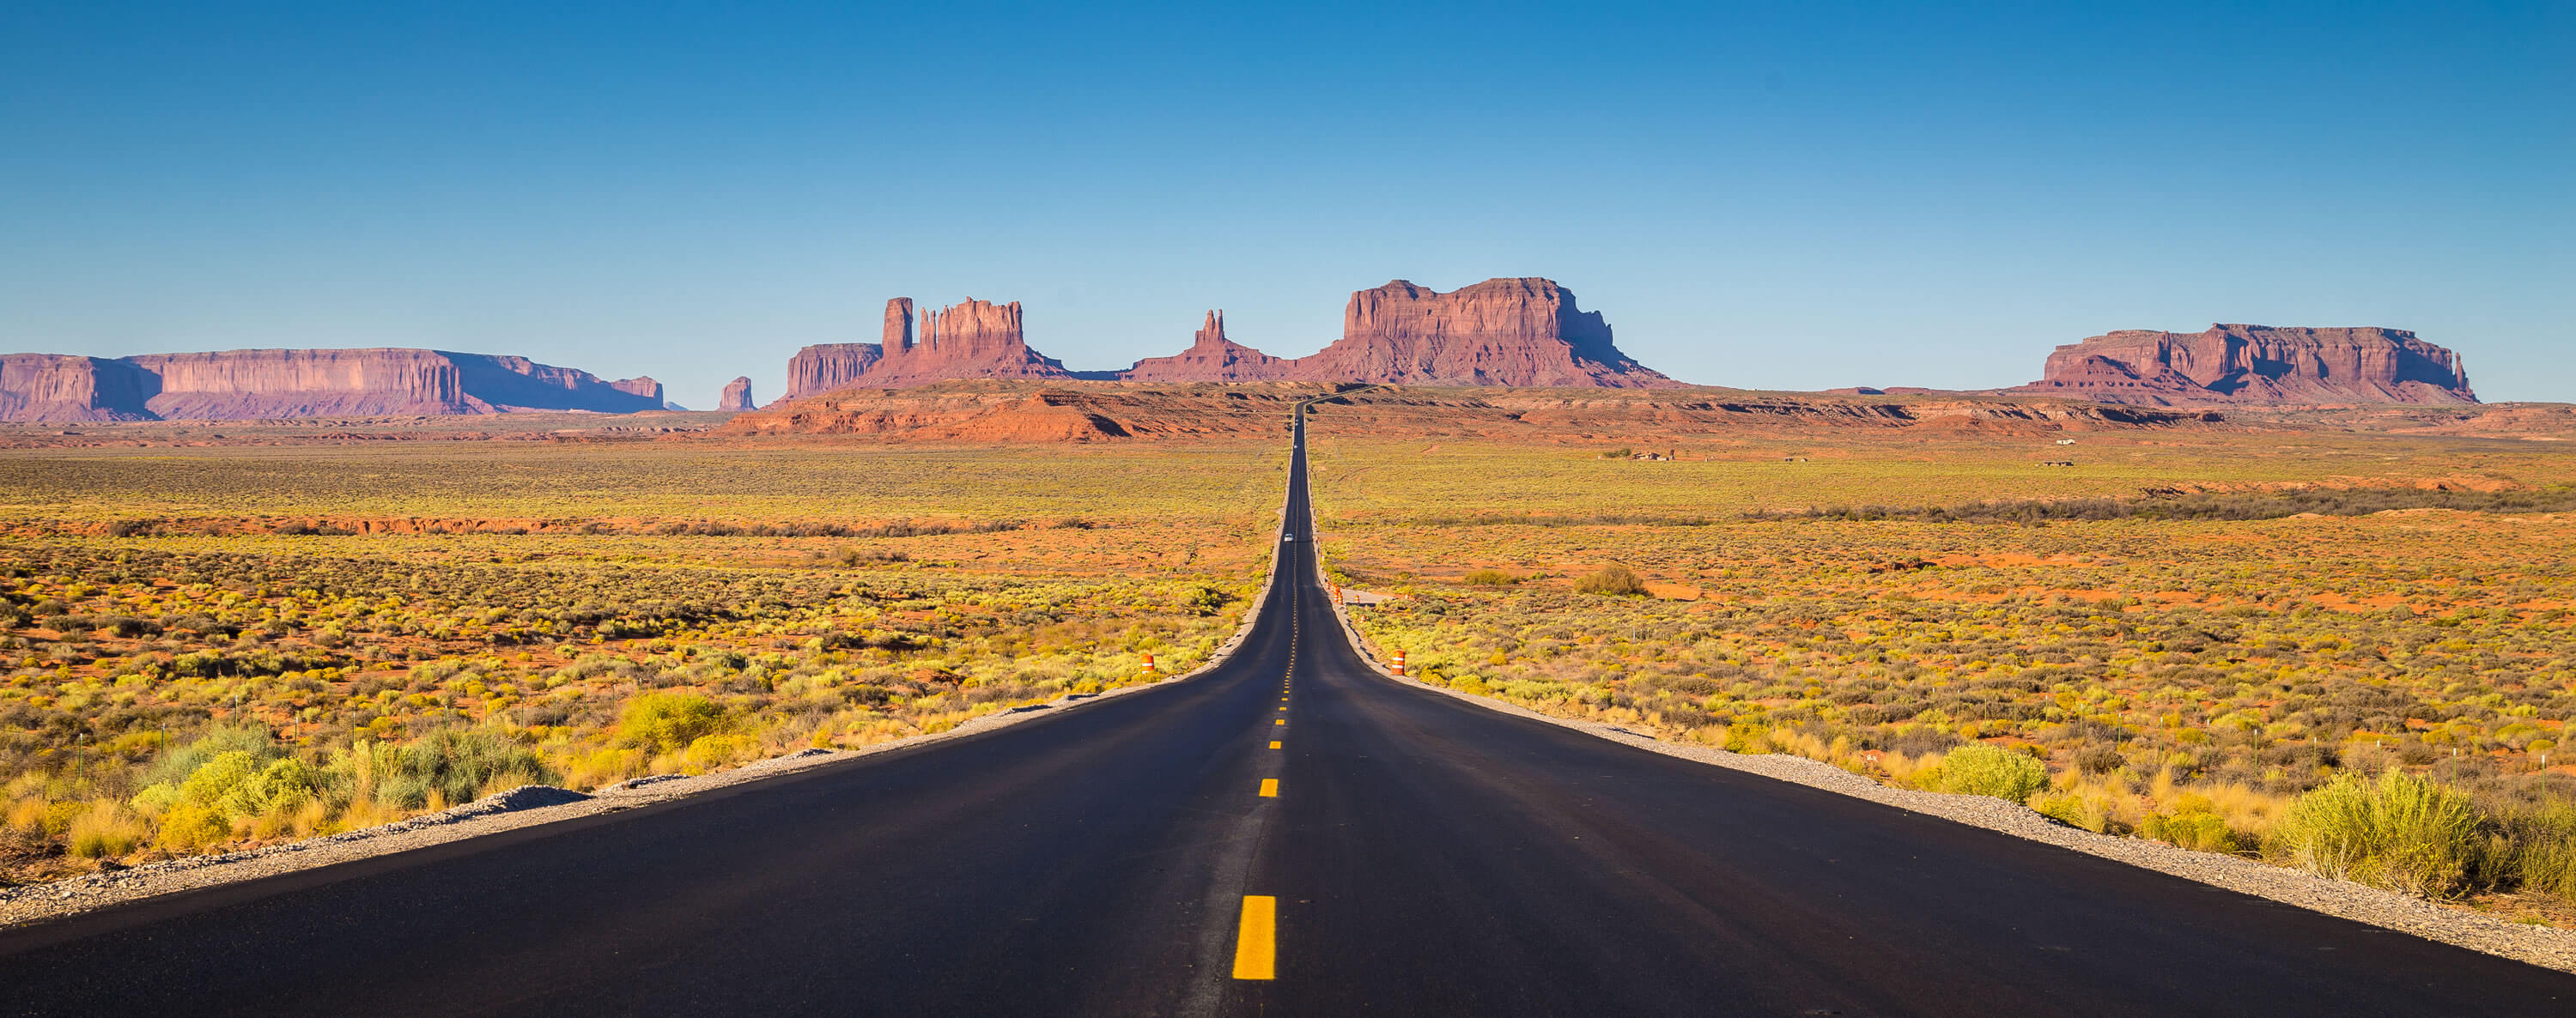 Monument Valley, Utah, USA